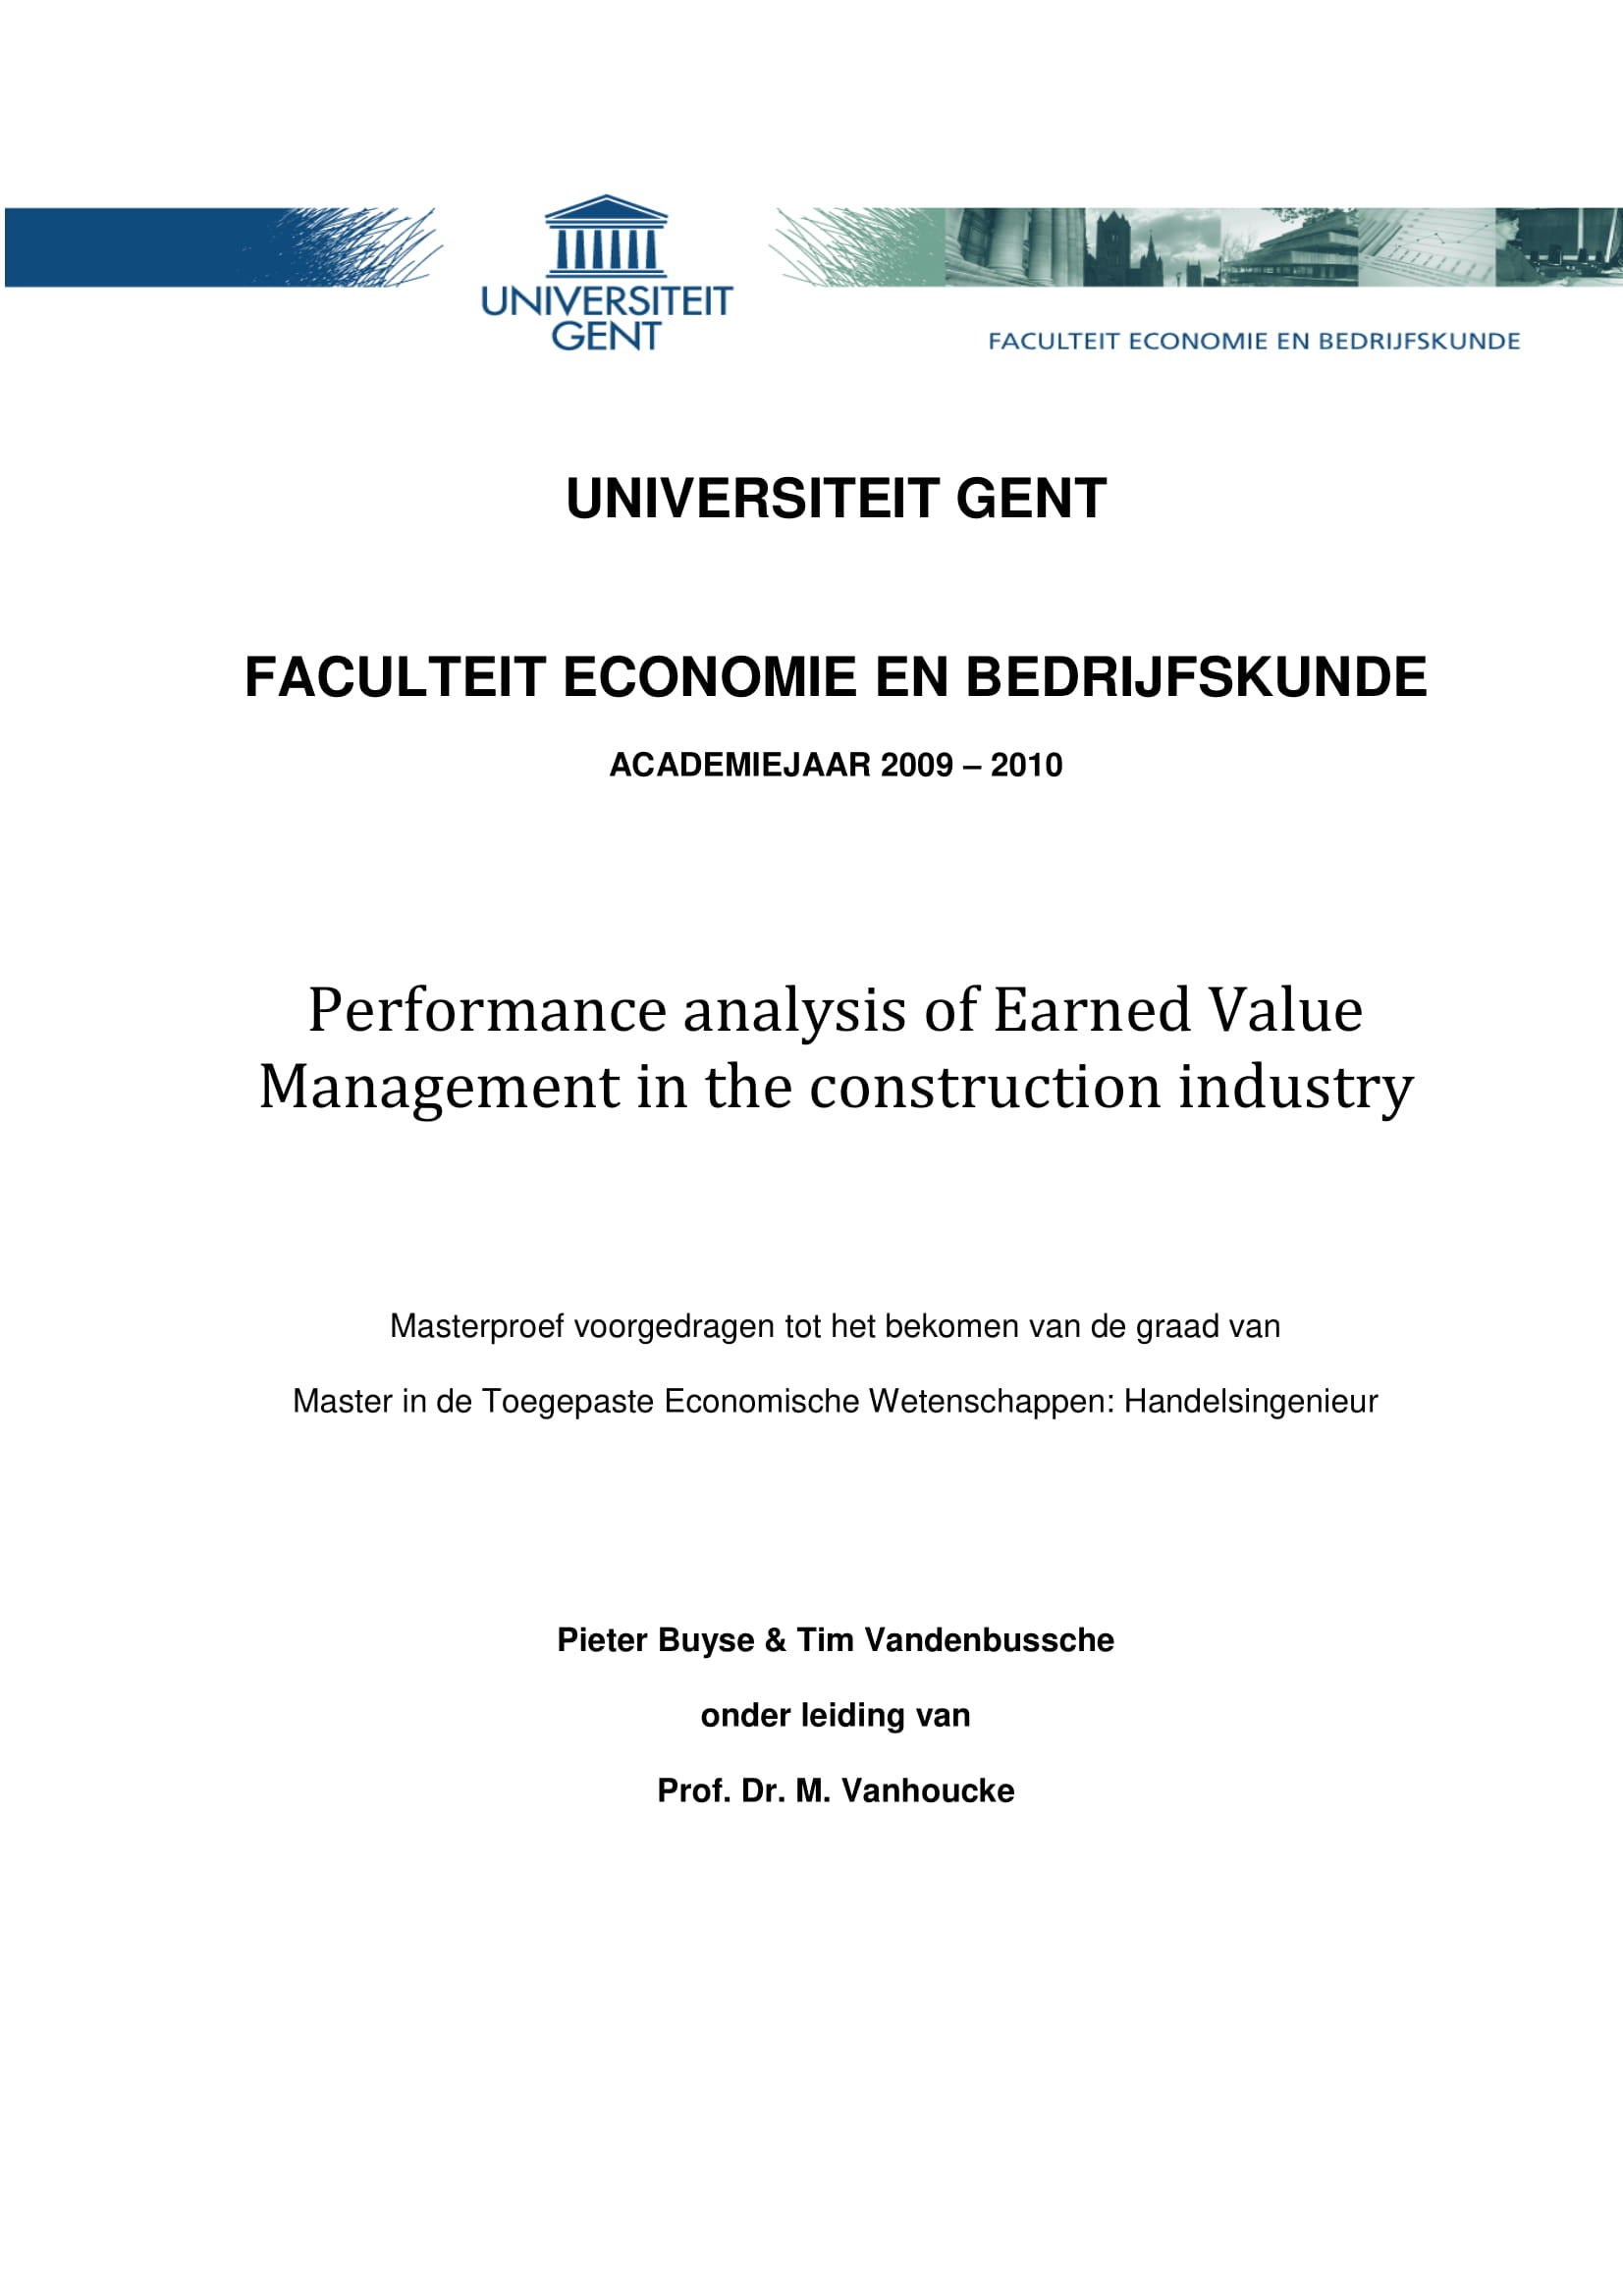 performance analysis of earned value management in the construction industry example 01